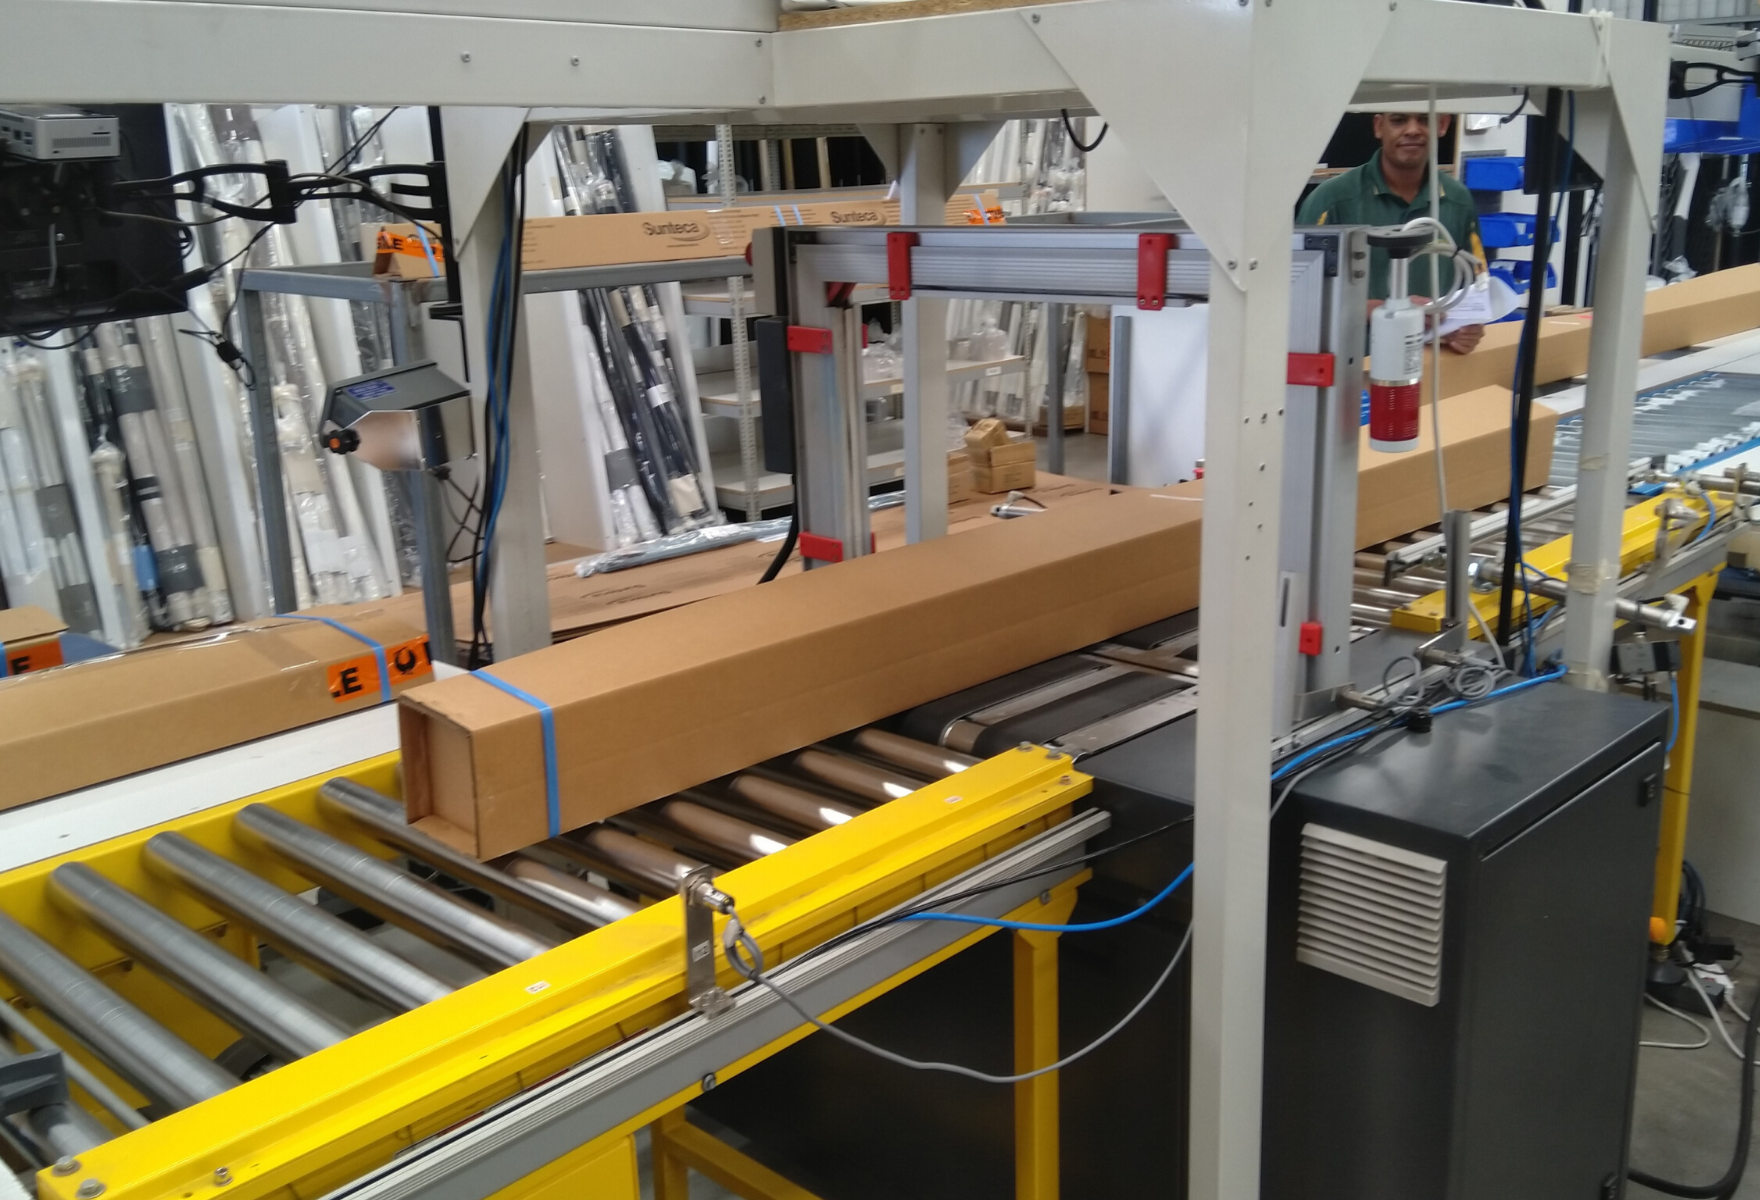 Automatic strapping of cartons